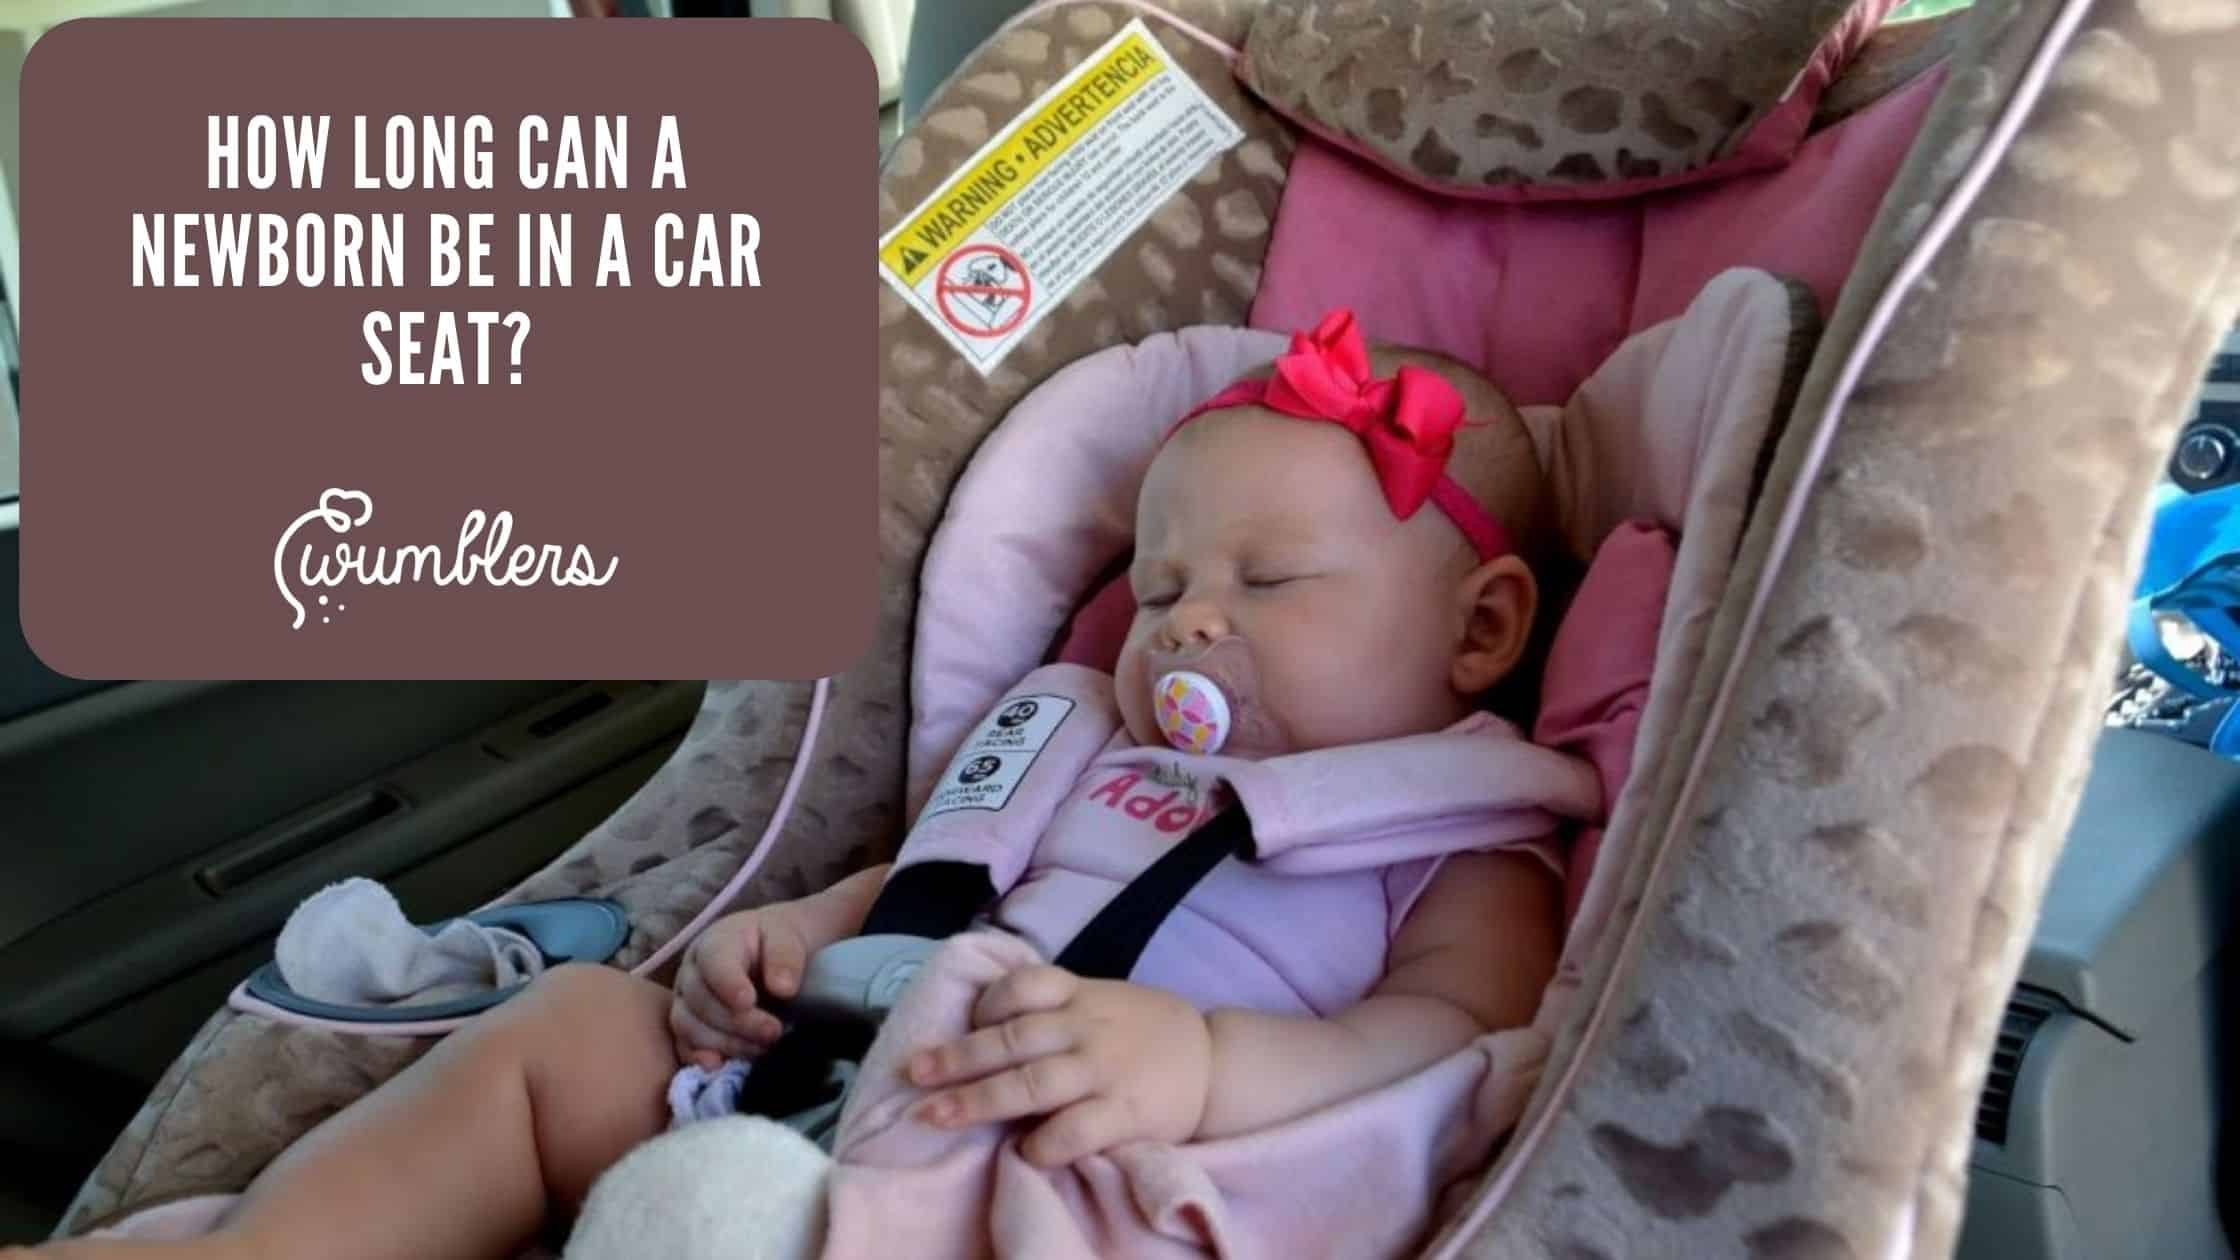 How long can a newborn be in a car seat (2)